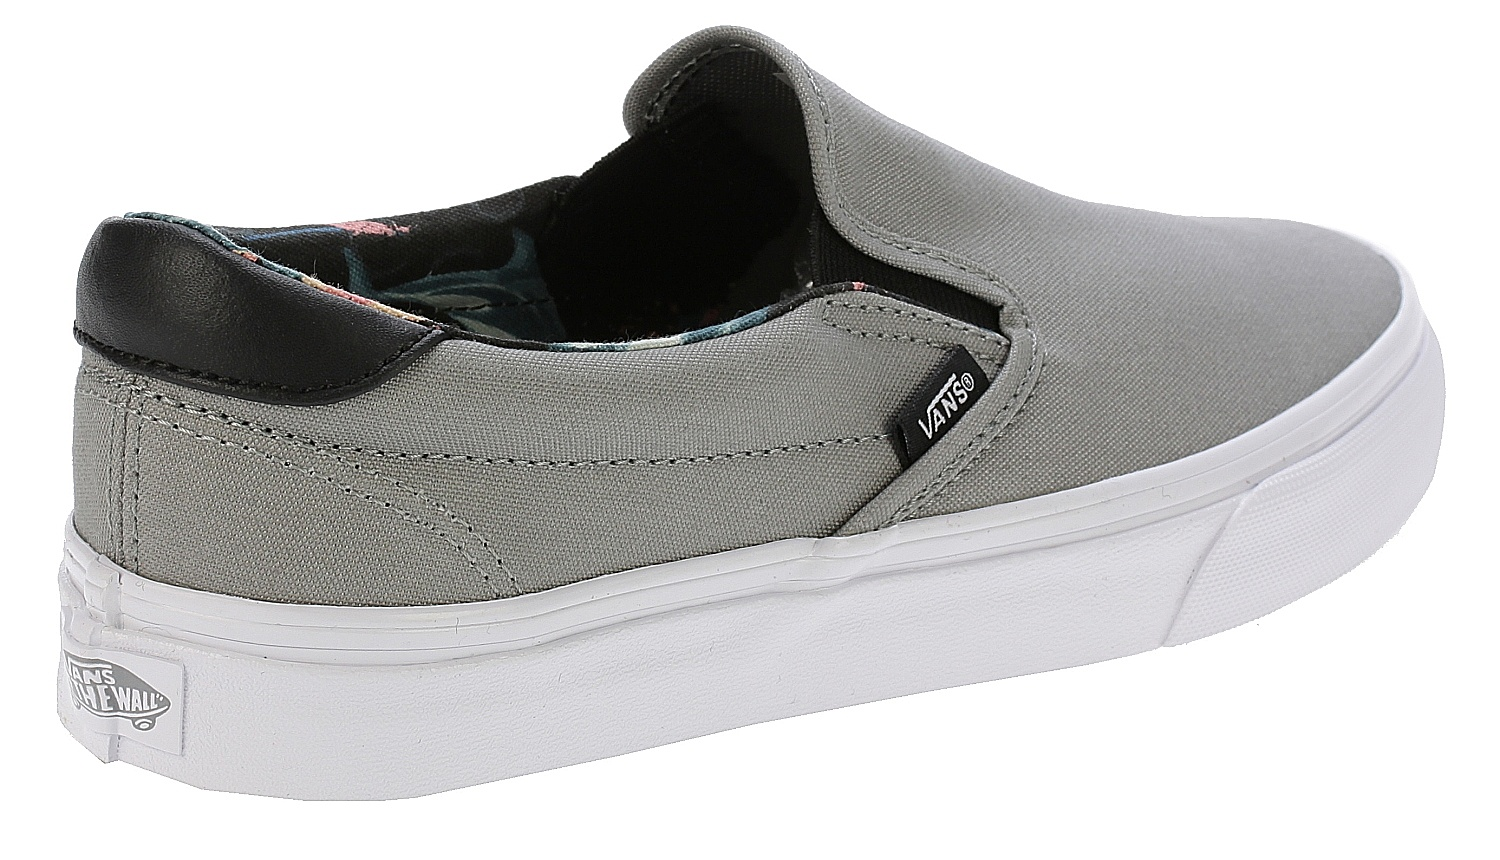 shoes Vans Slip-On 59 - C&L/Dolphins/Wild Dove